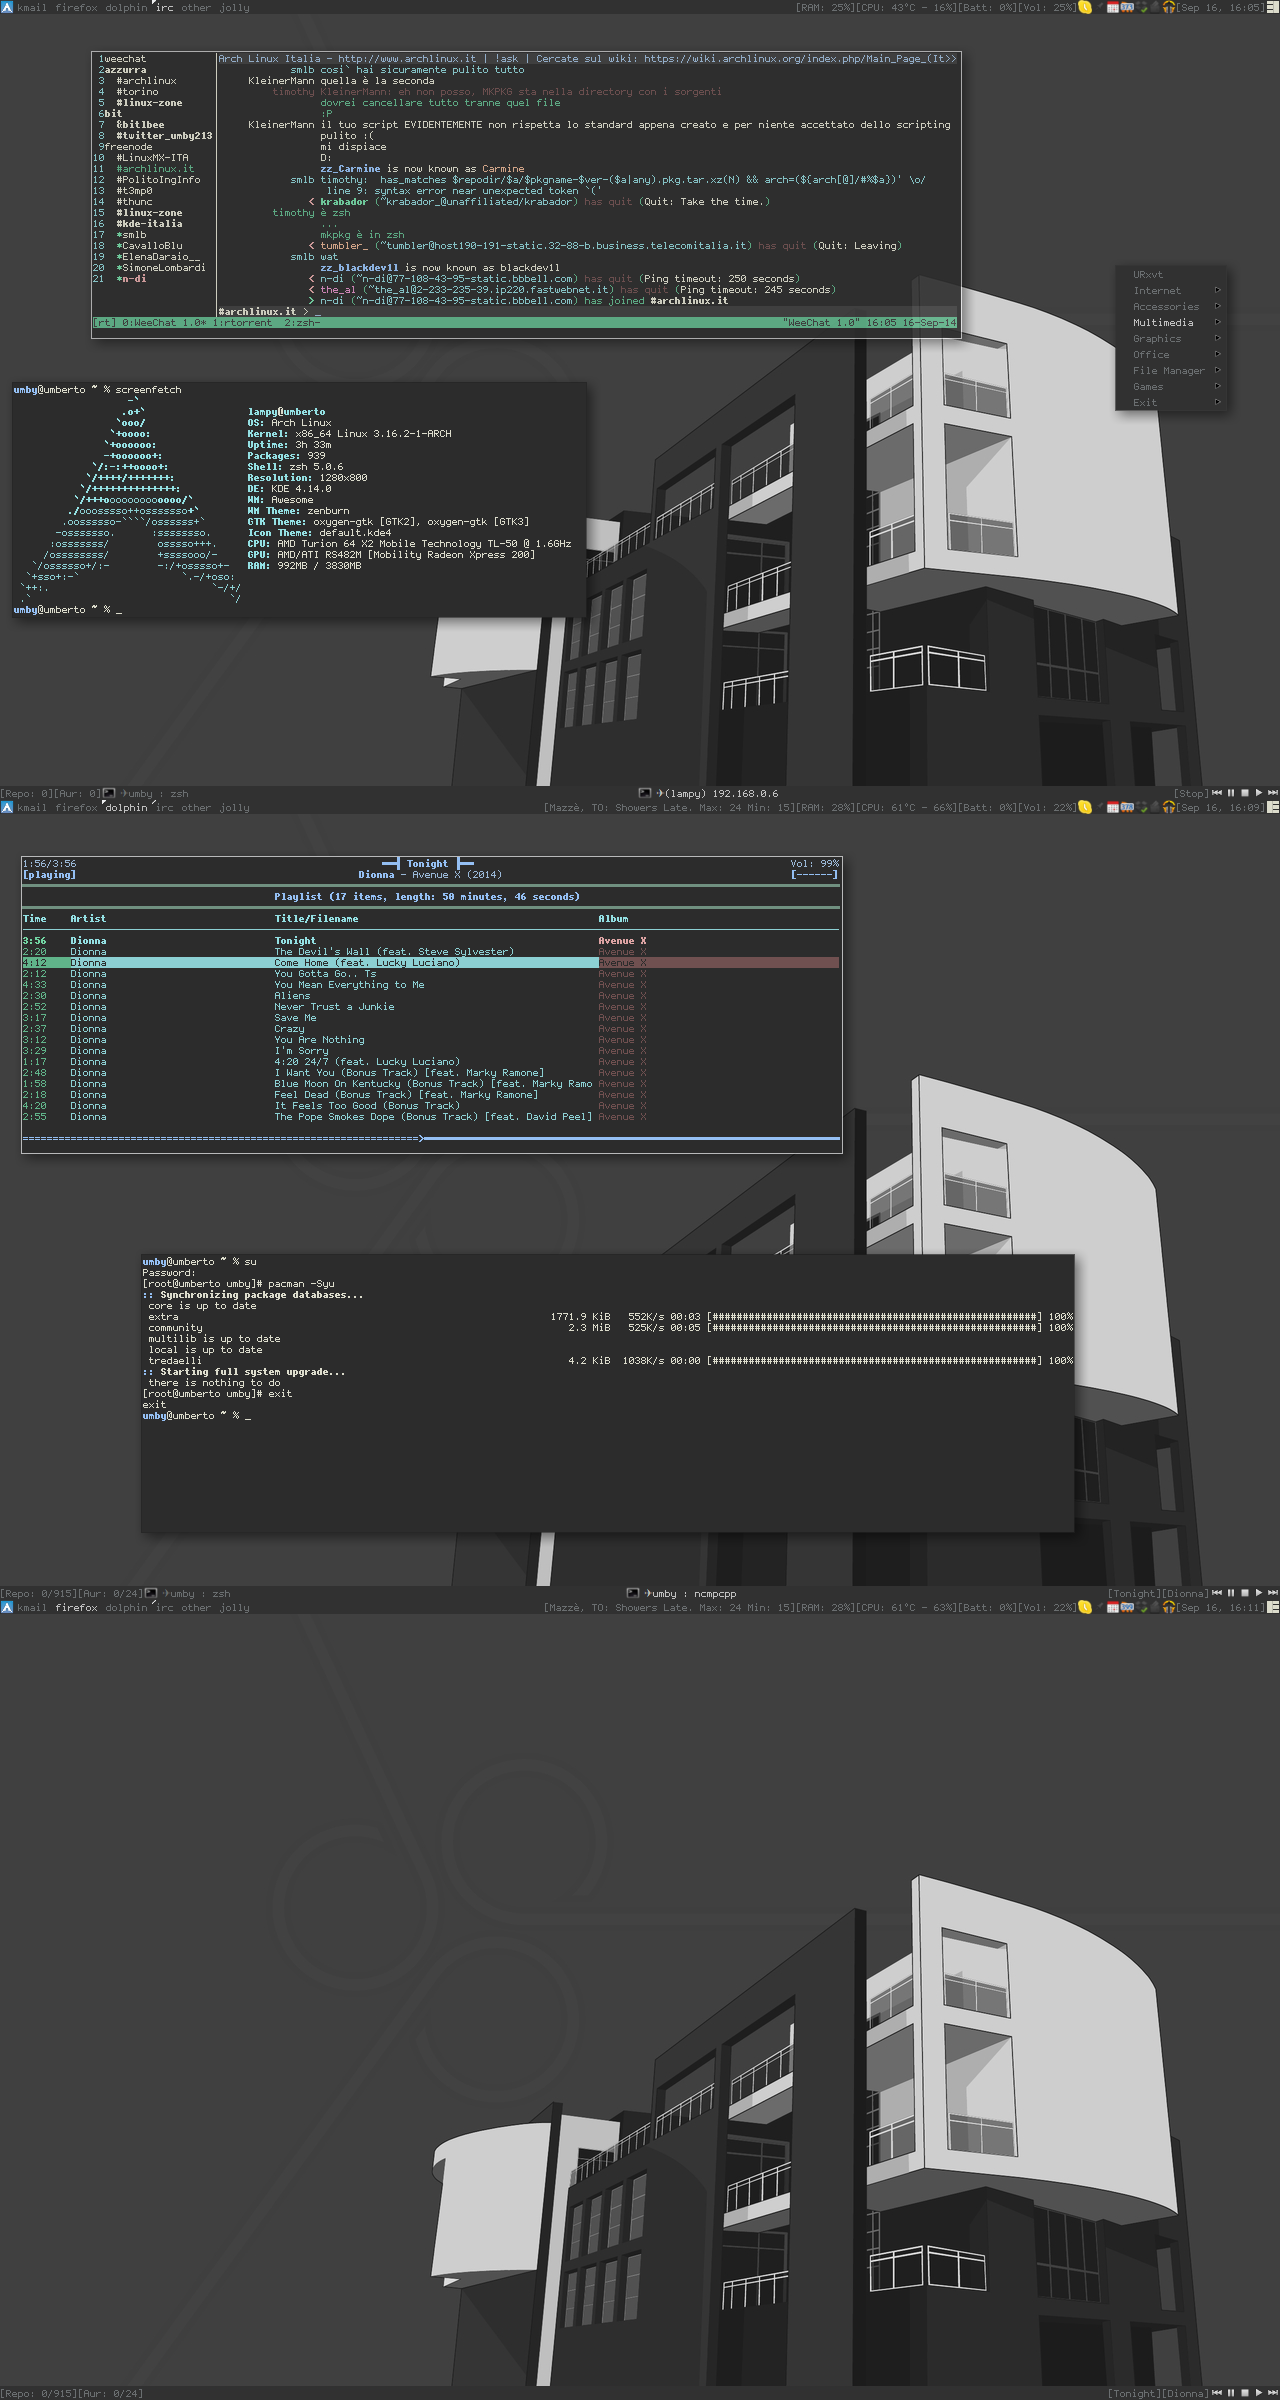 Arch Linux KDE - Awesome (no {kwin,plasma,krunner}) ncmpcpp (abs